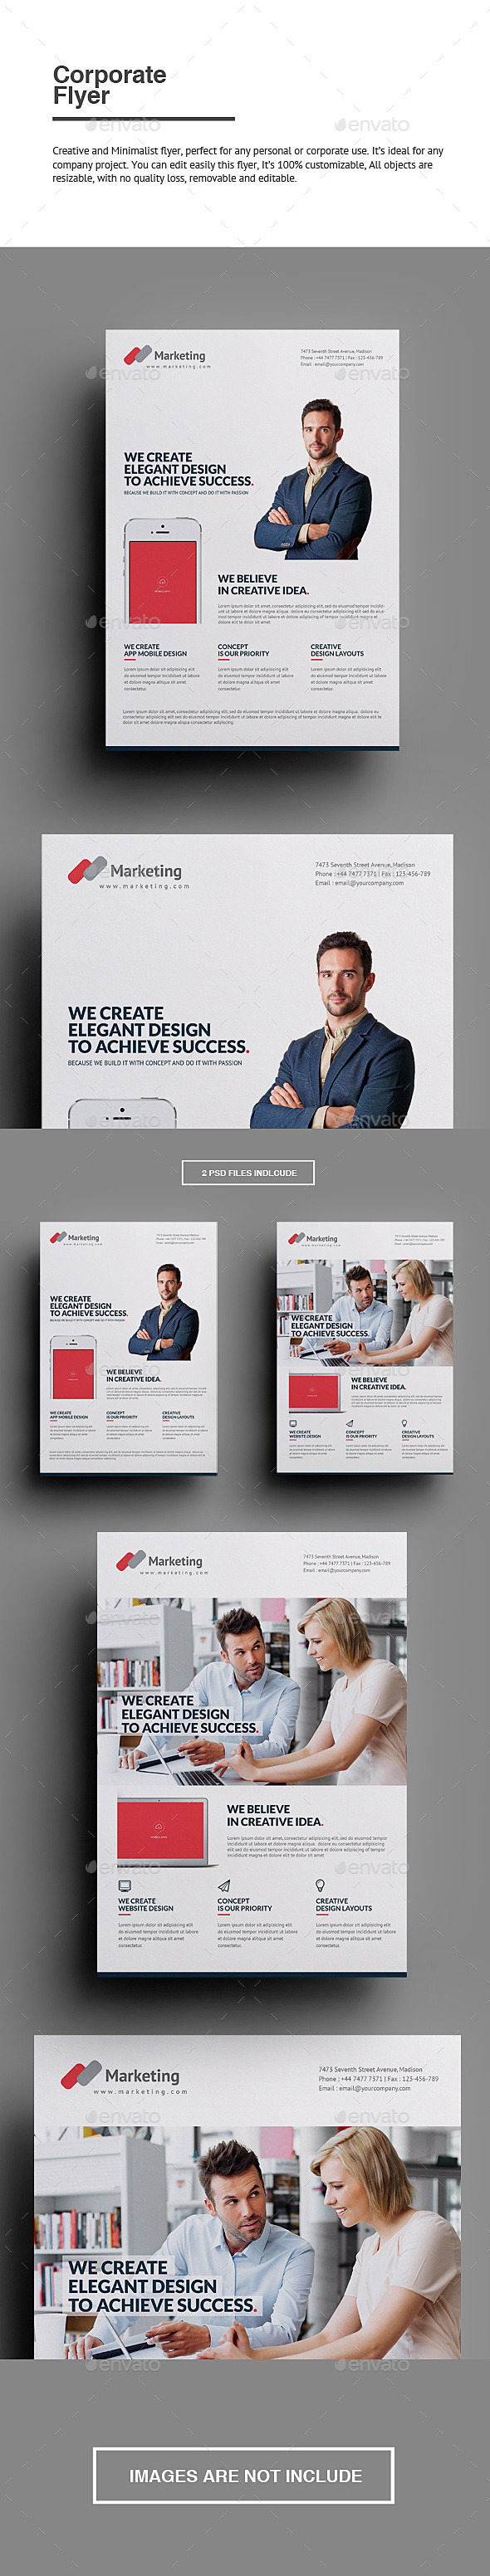 GraphicRiver Corporate Flyer 10401525